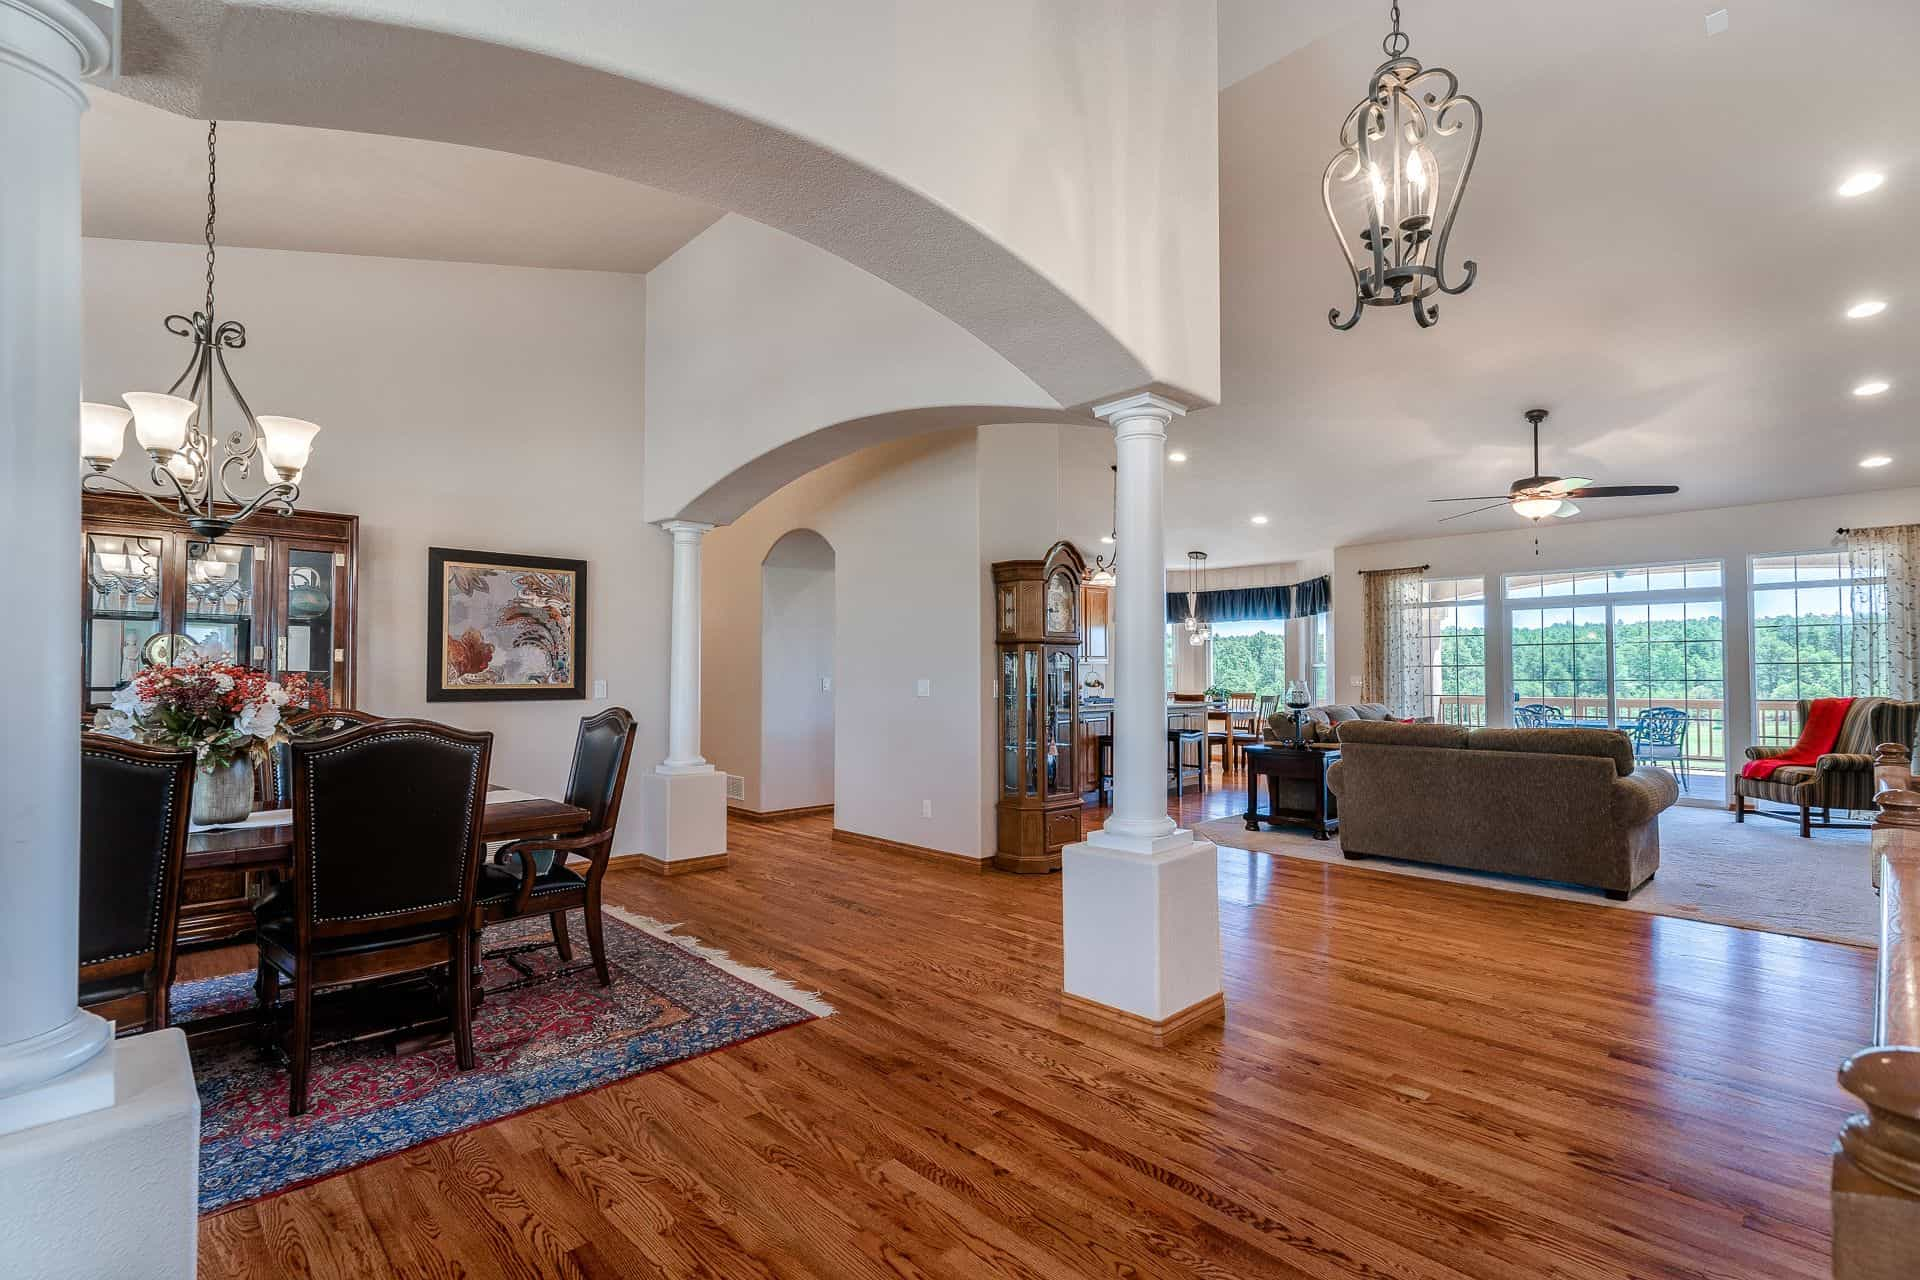 Dining Room, Great Room, Nook